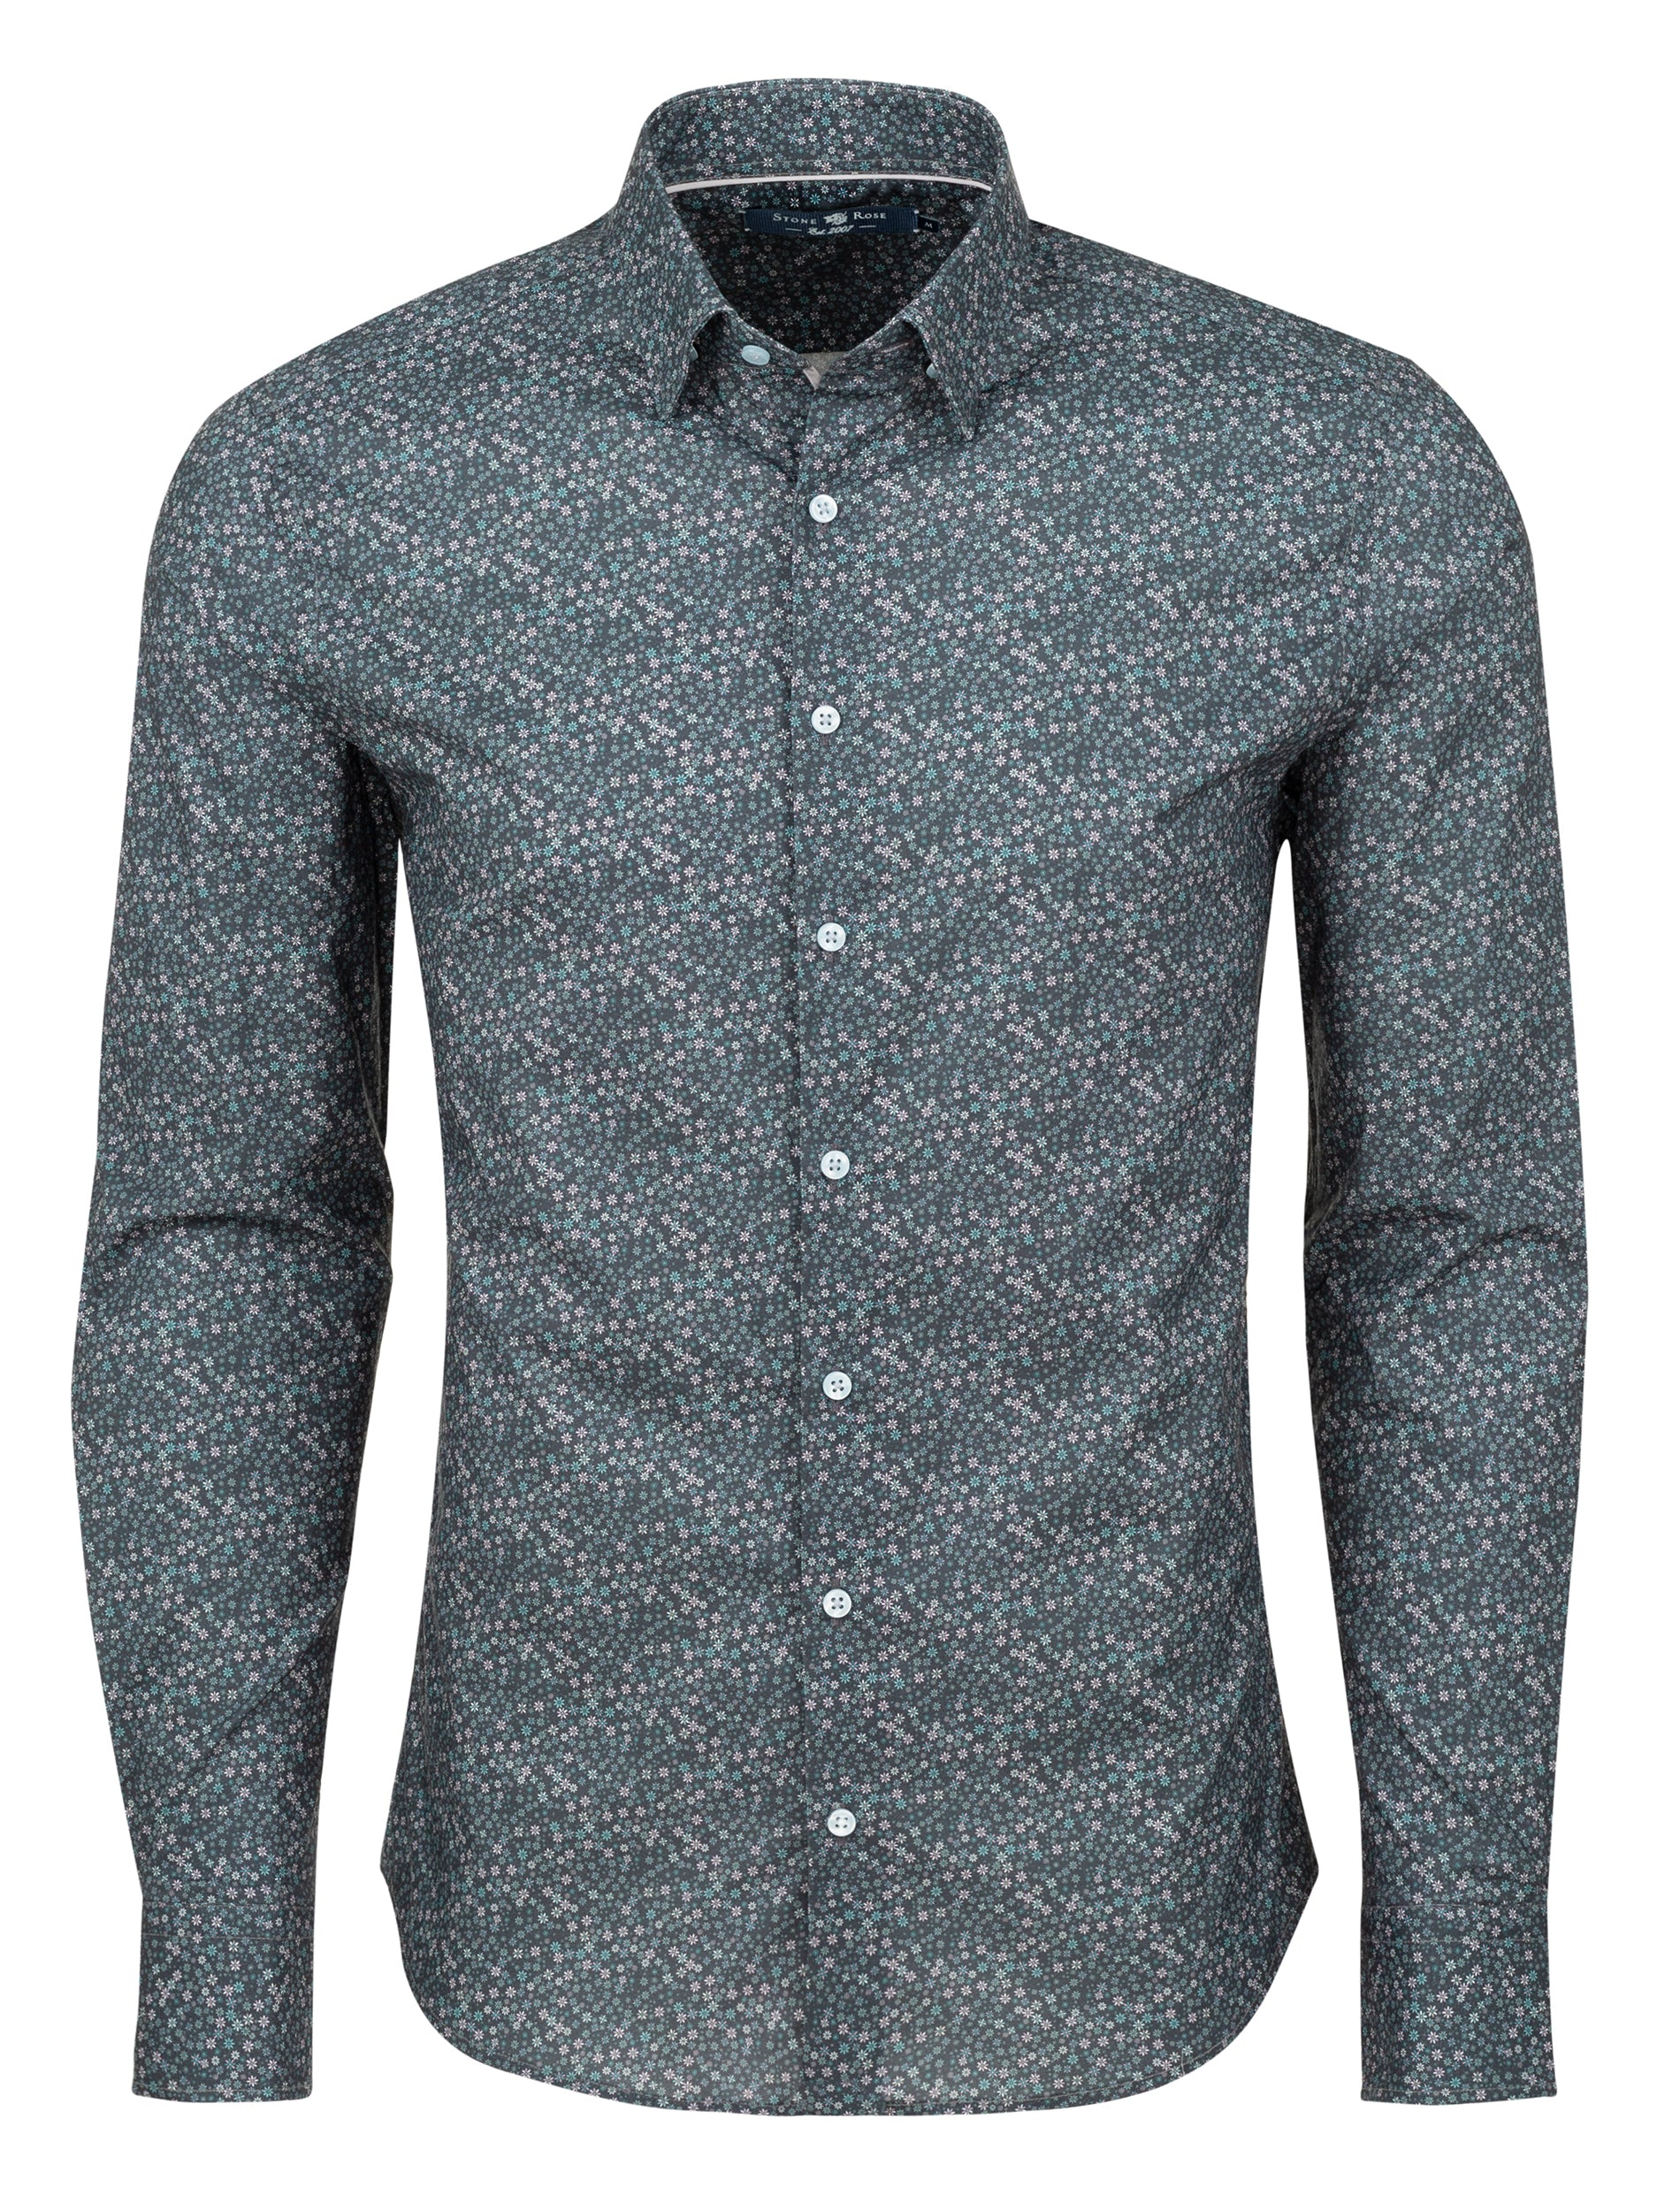 Grey Ditsy Print Long Sleeve Shirt